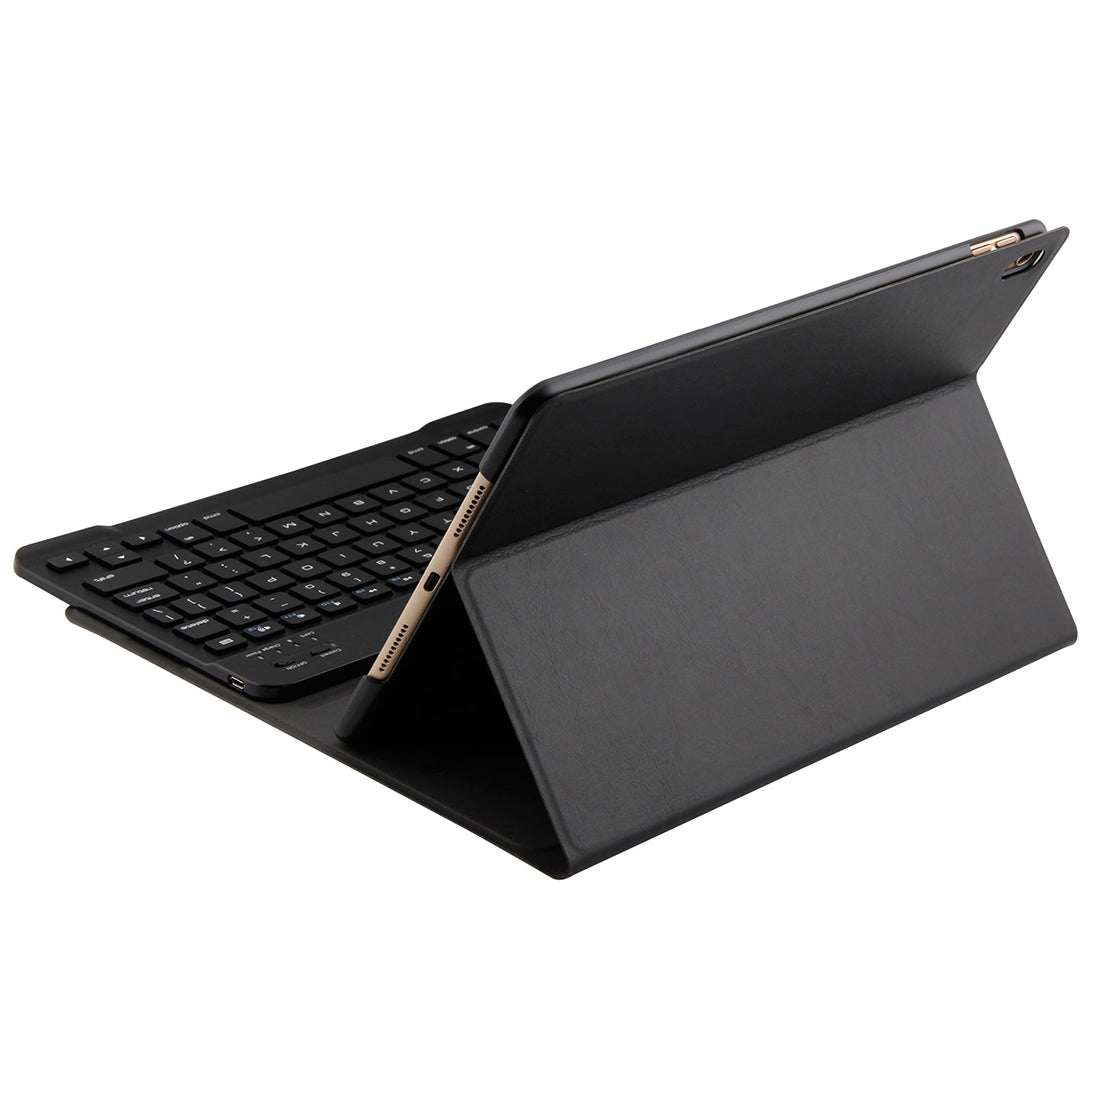 FT-1035 For iPad Pro 10.5 inch & iPad Air 10.5 inch Lambskin Texture Detachable Plastic Bluetooth Keyboard Leather Cover with Stand Function(Black)